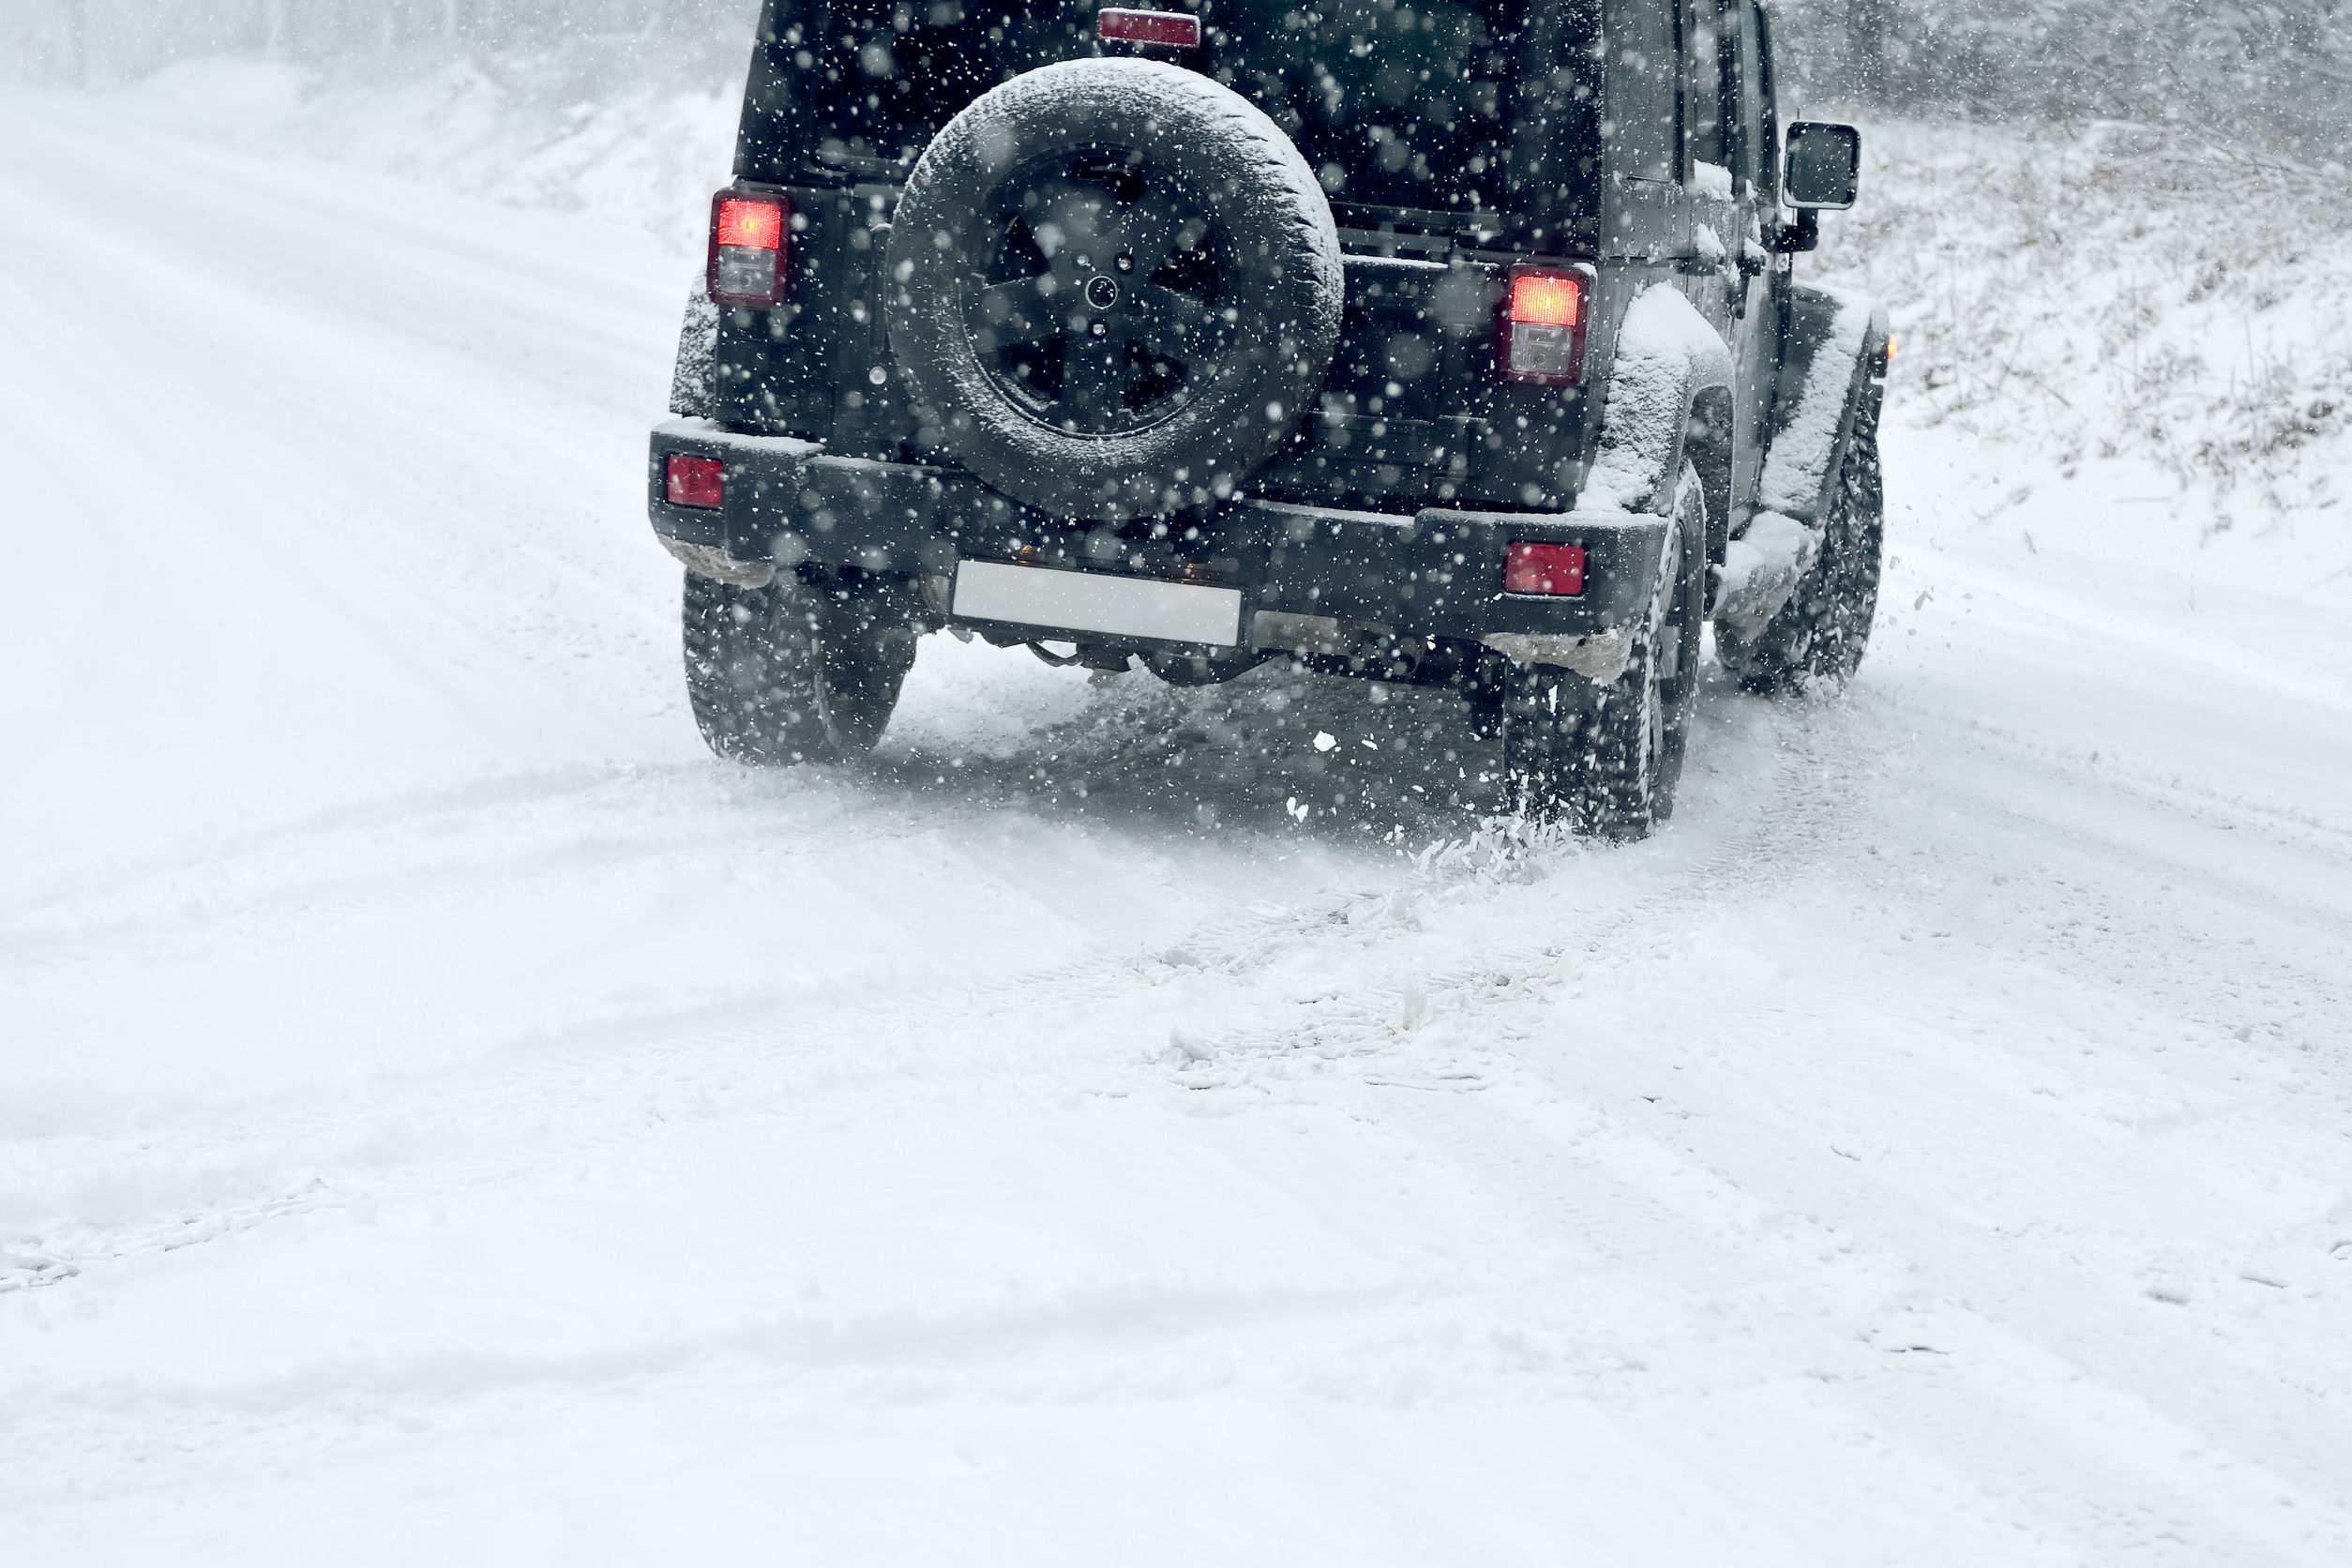 47346346 - winter driving - risk of snow and ice - drifting